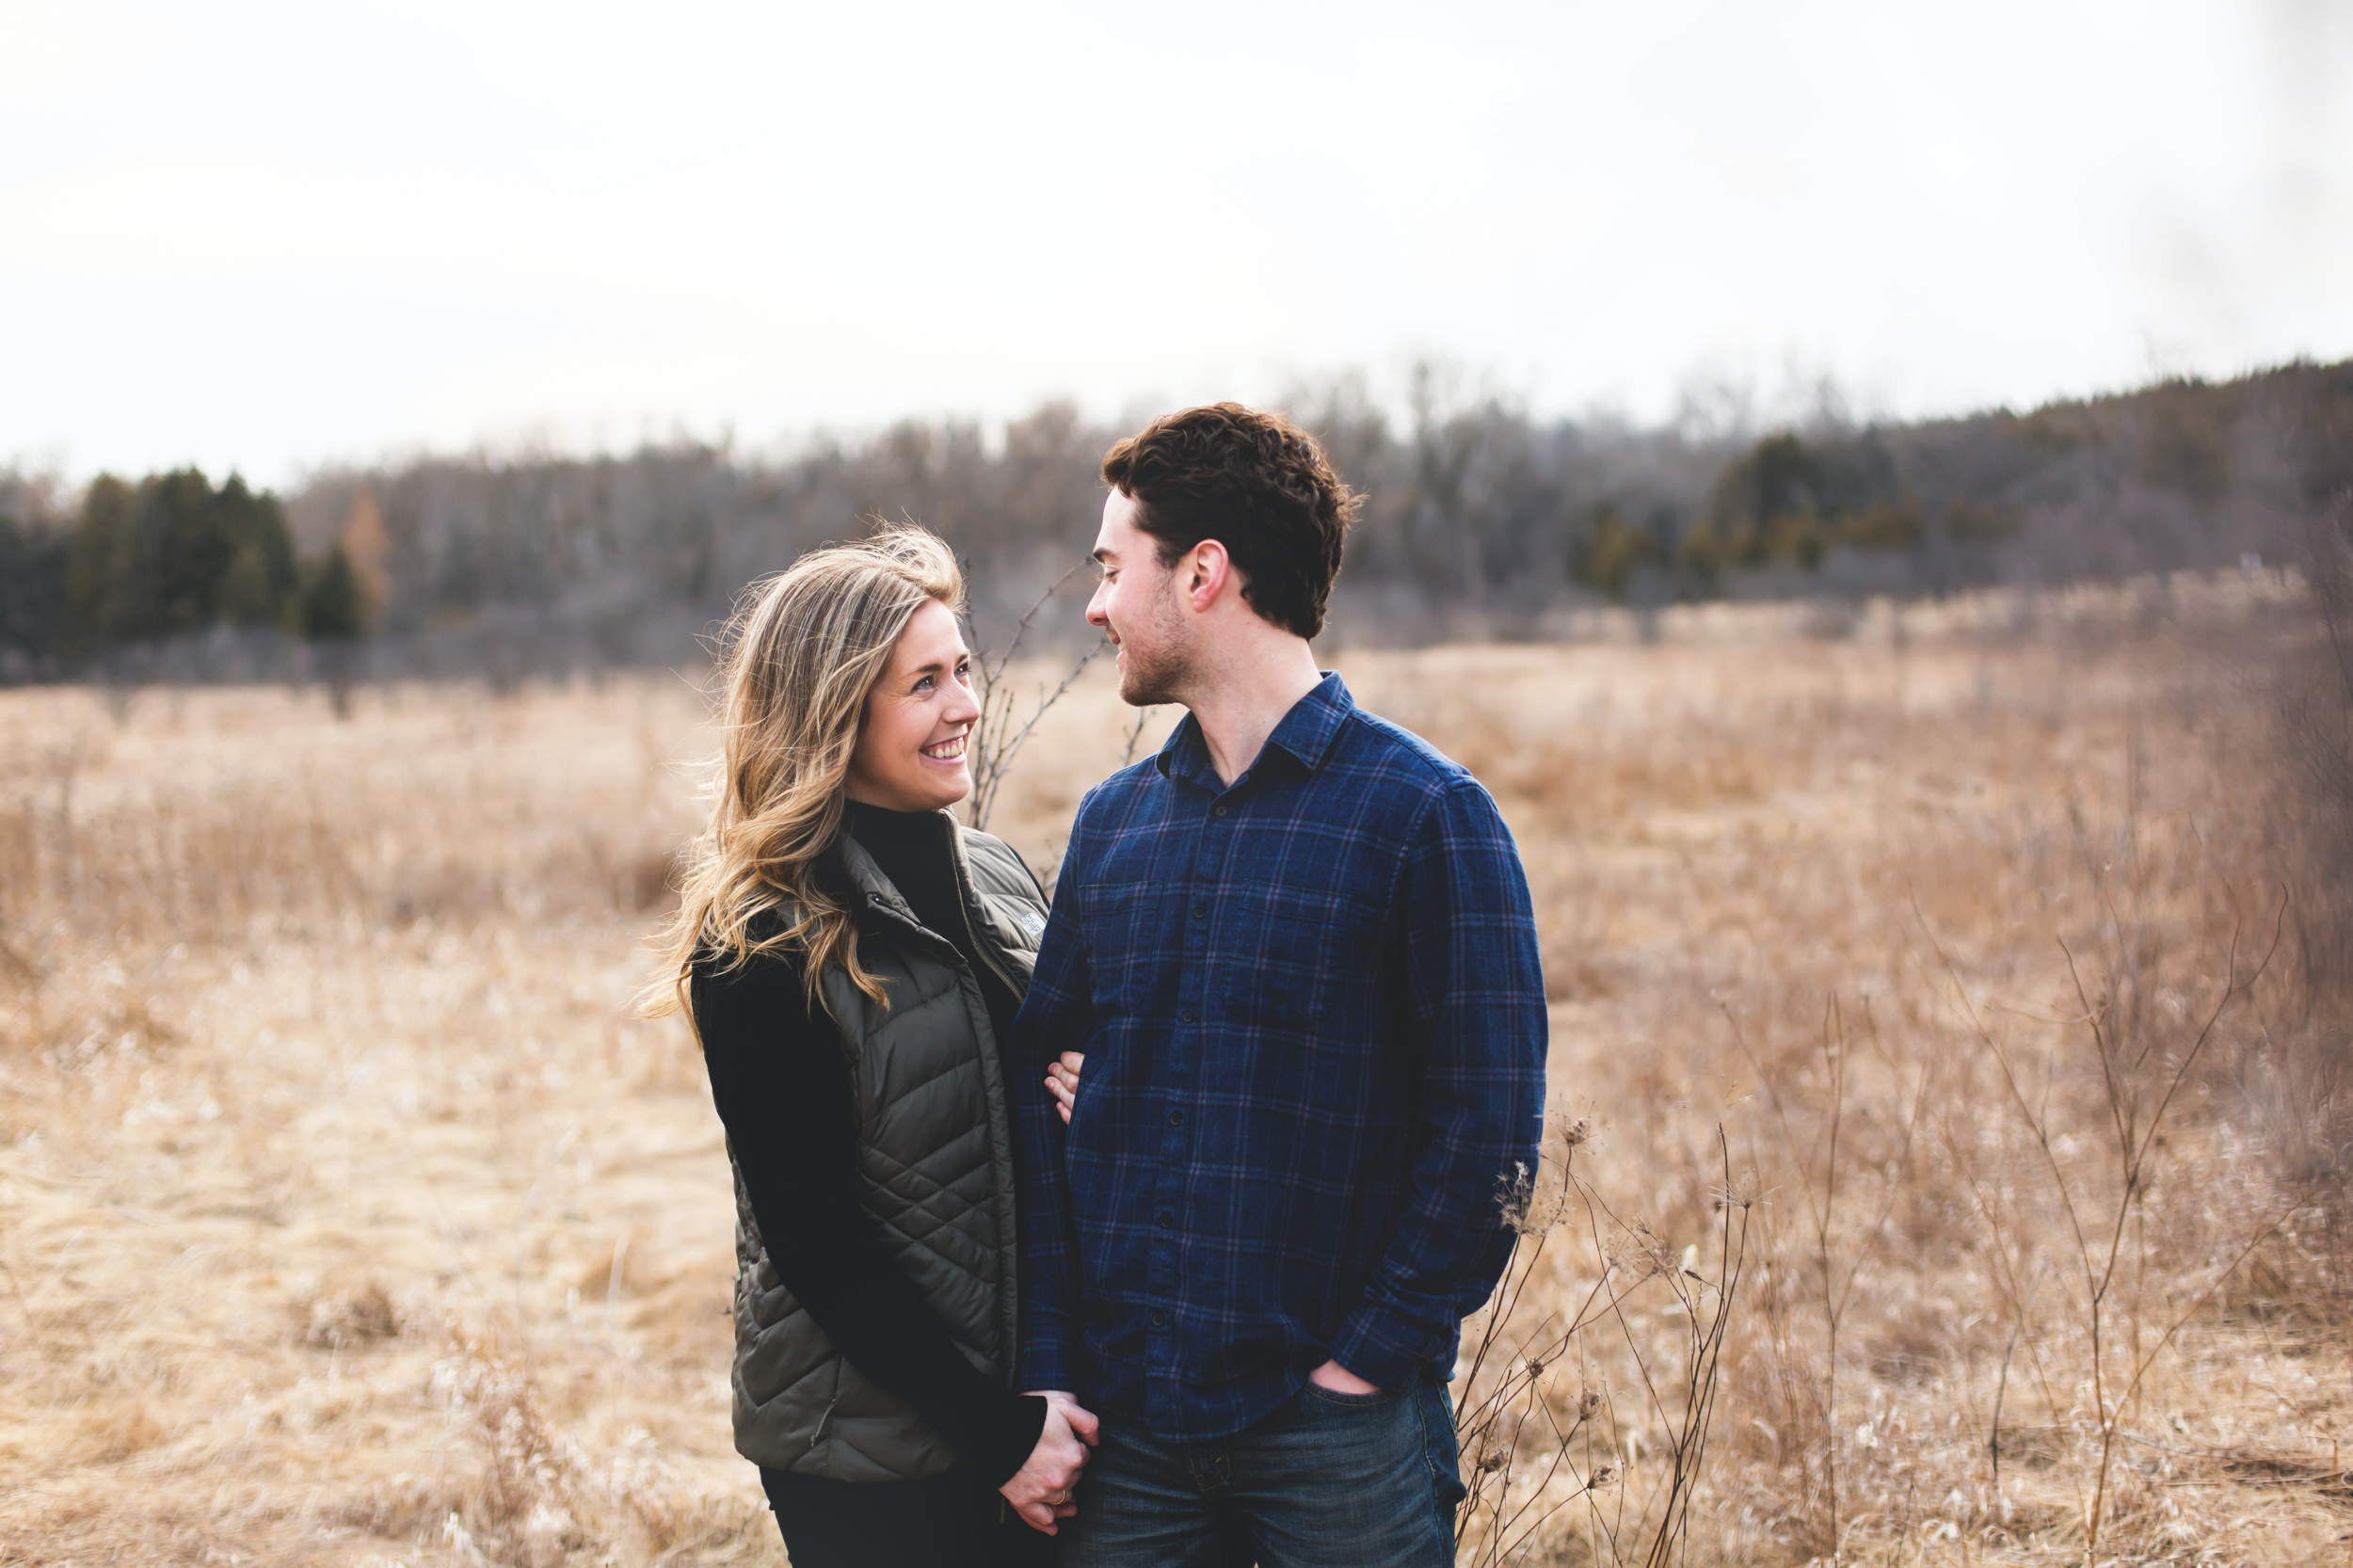 Engagement-Session-Photographer-Guelph-Lake-Hamilton-Toronto-Niagara-Photography-Moments-by-Lauren-Photo-Image-9.png